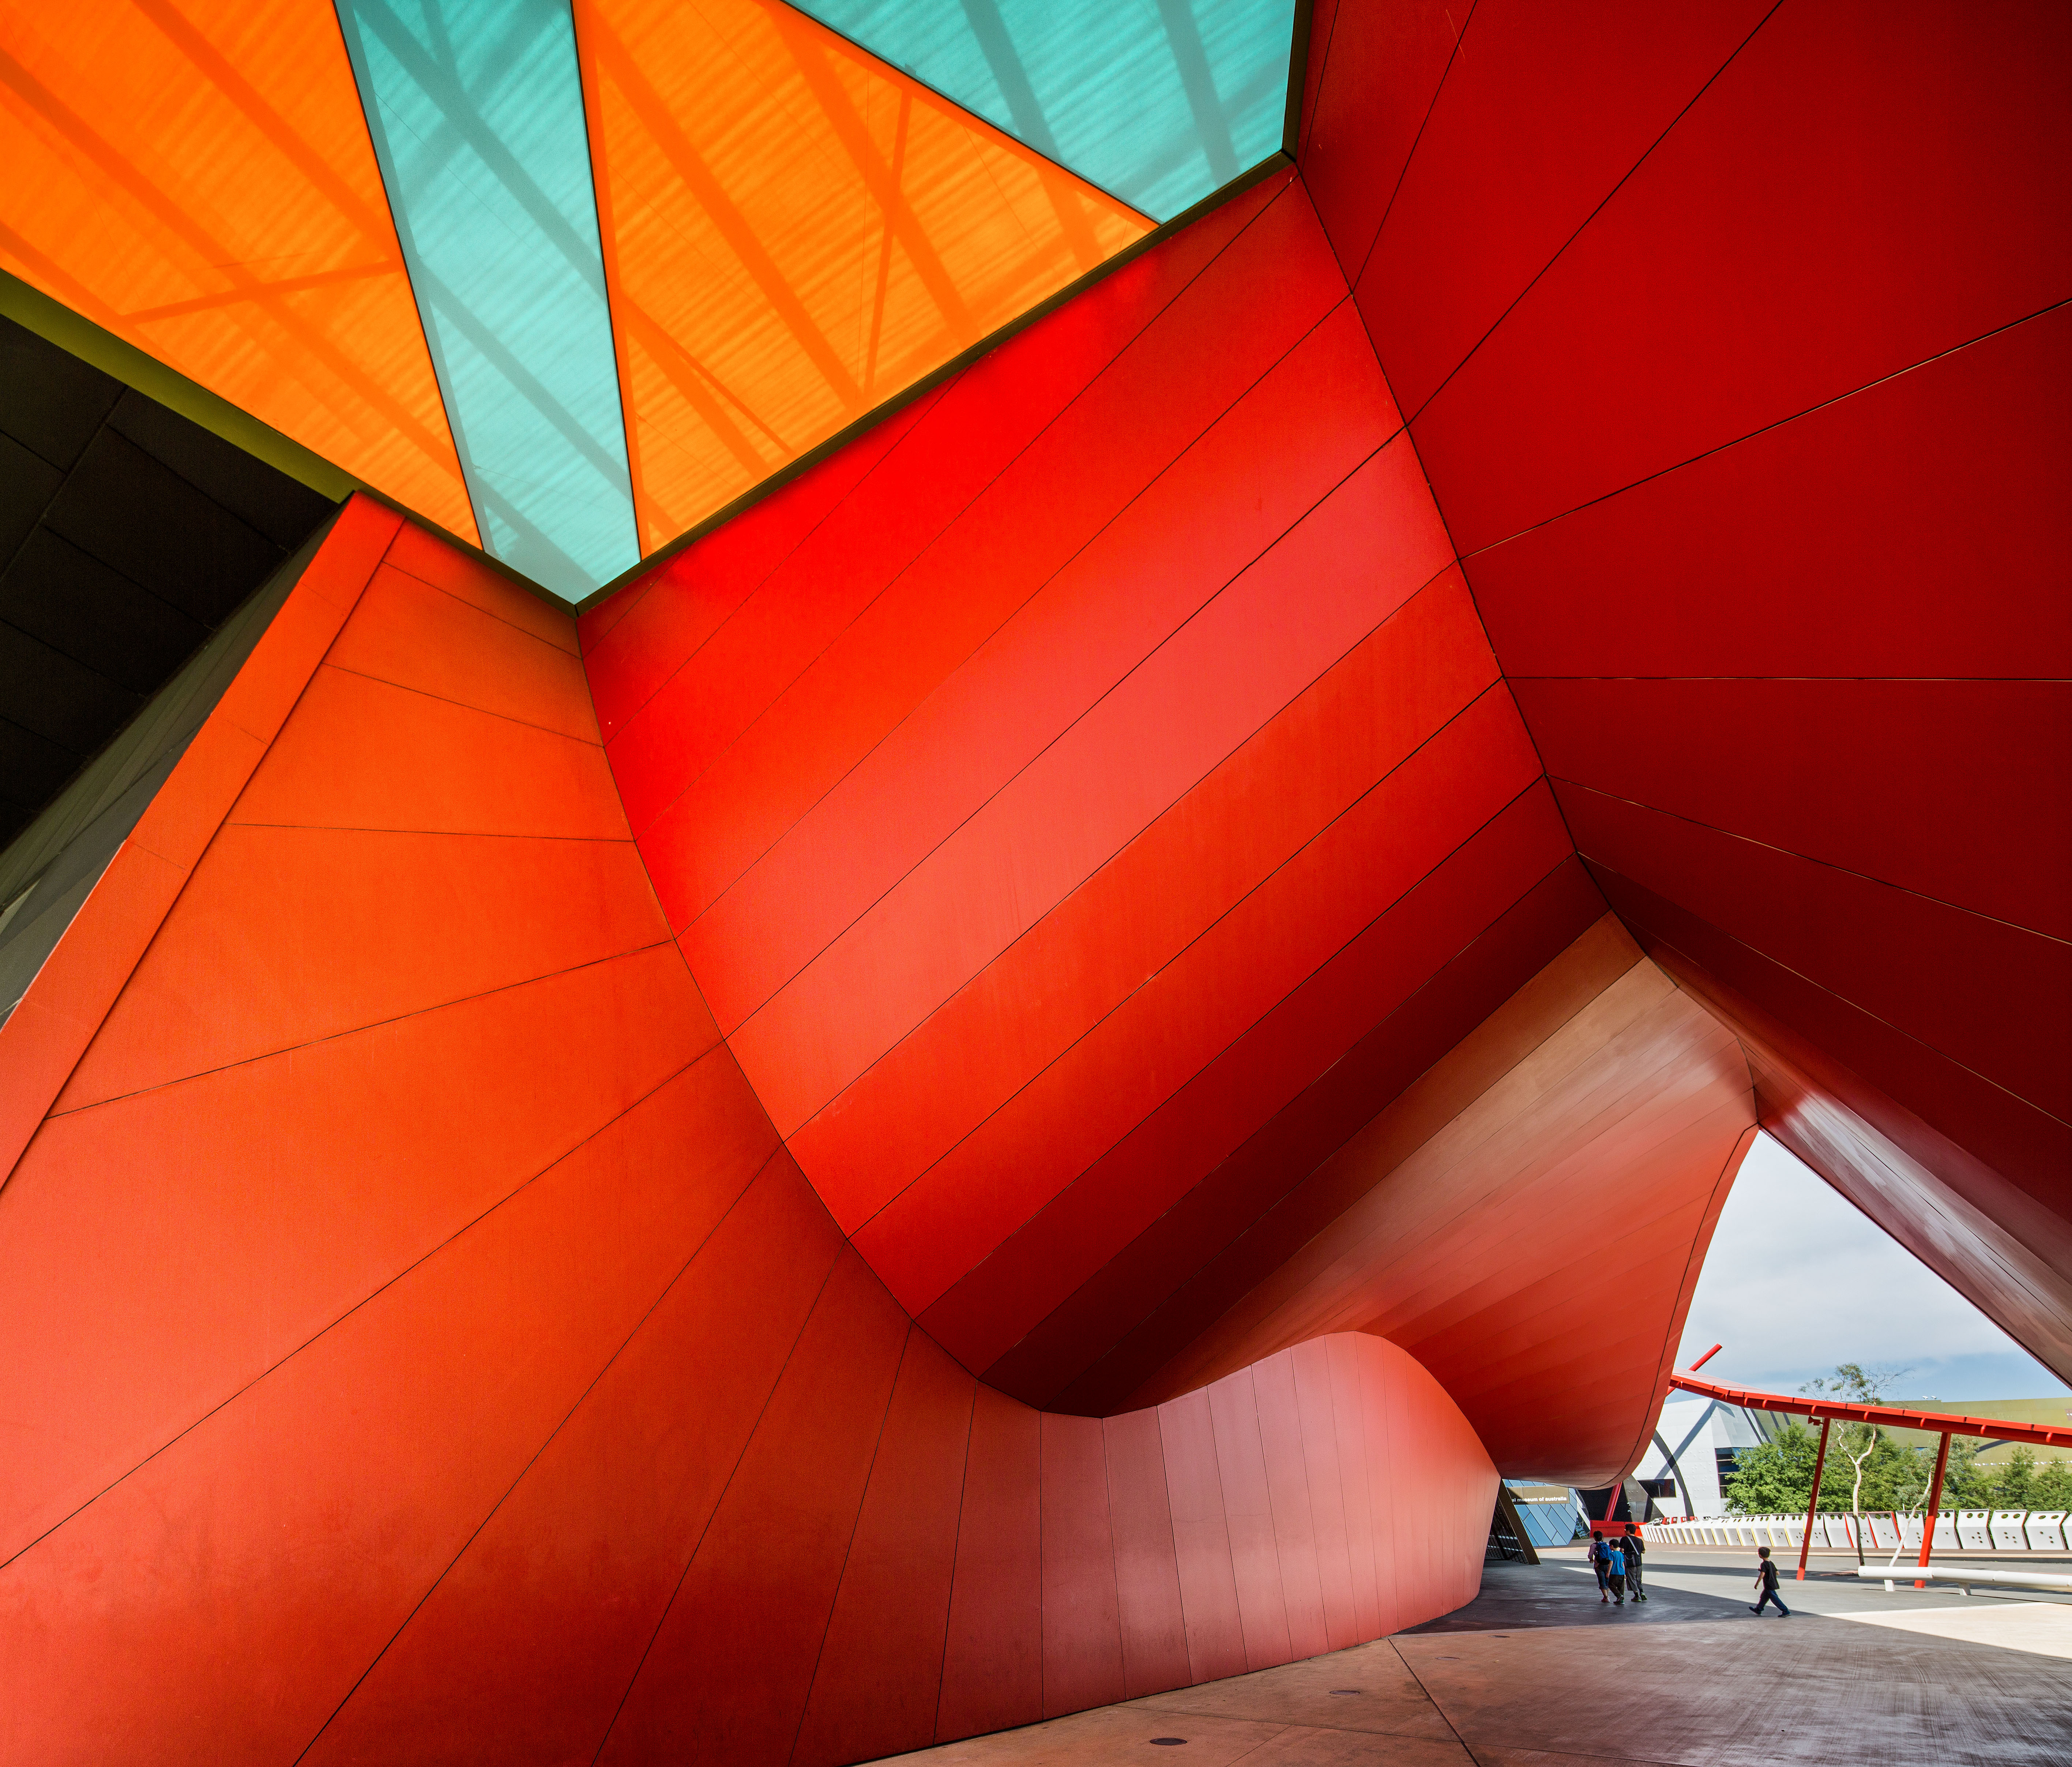 Interesting shapes at the National Museum of Australia